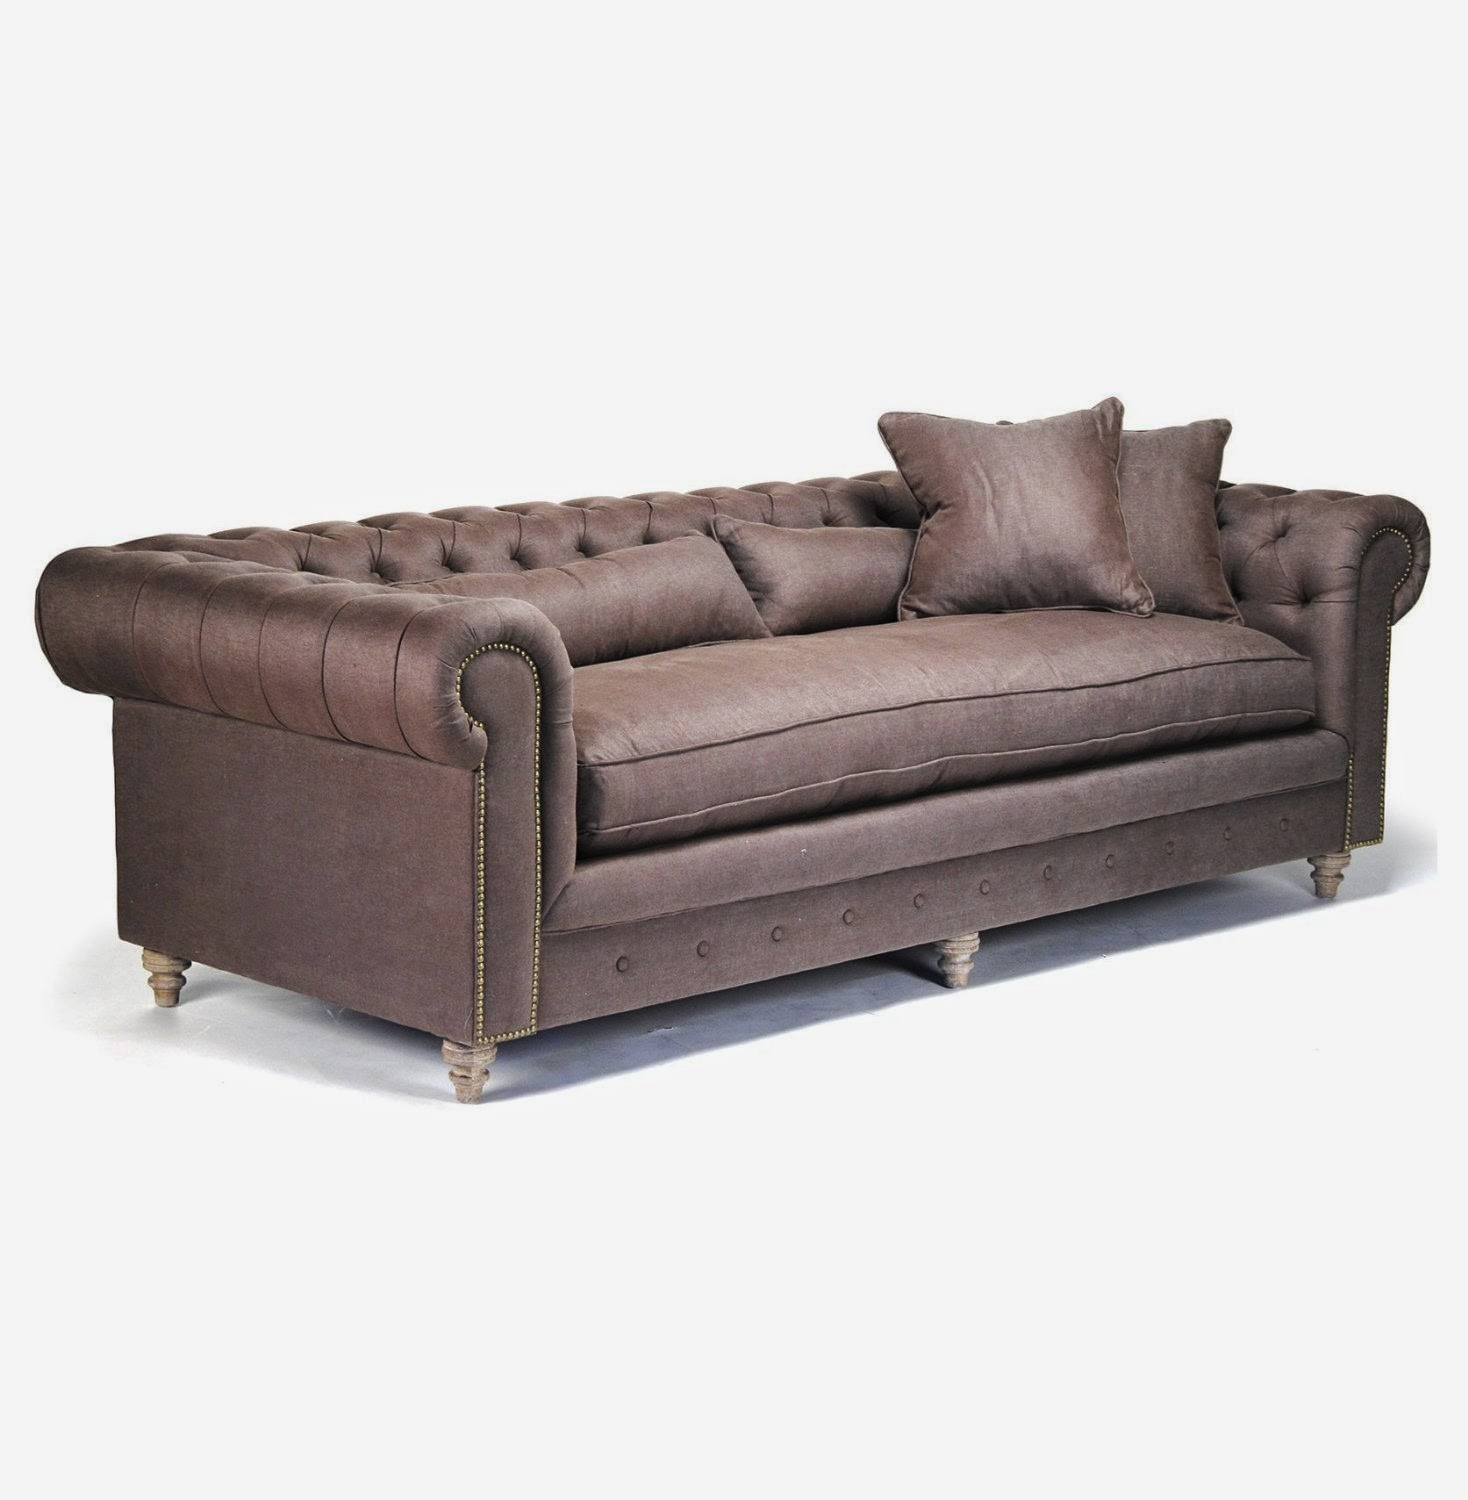 Fabric Chesterfield Sofa Bed Uk Dundee United Hibernian Sofascore Sofas 28 Images